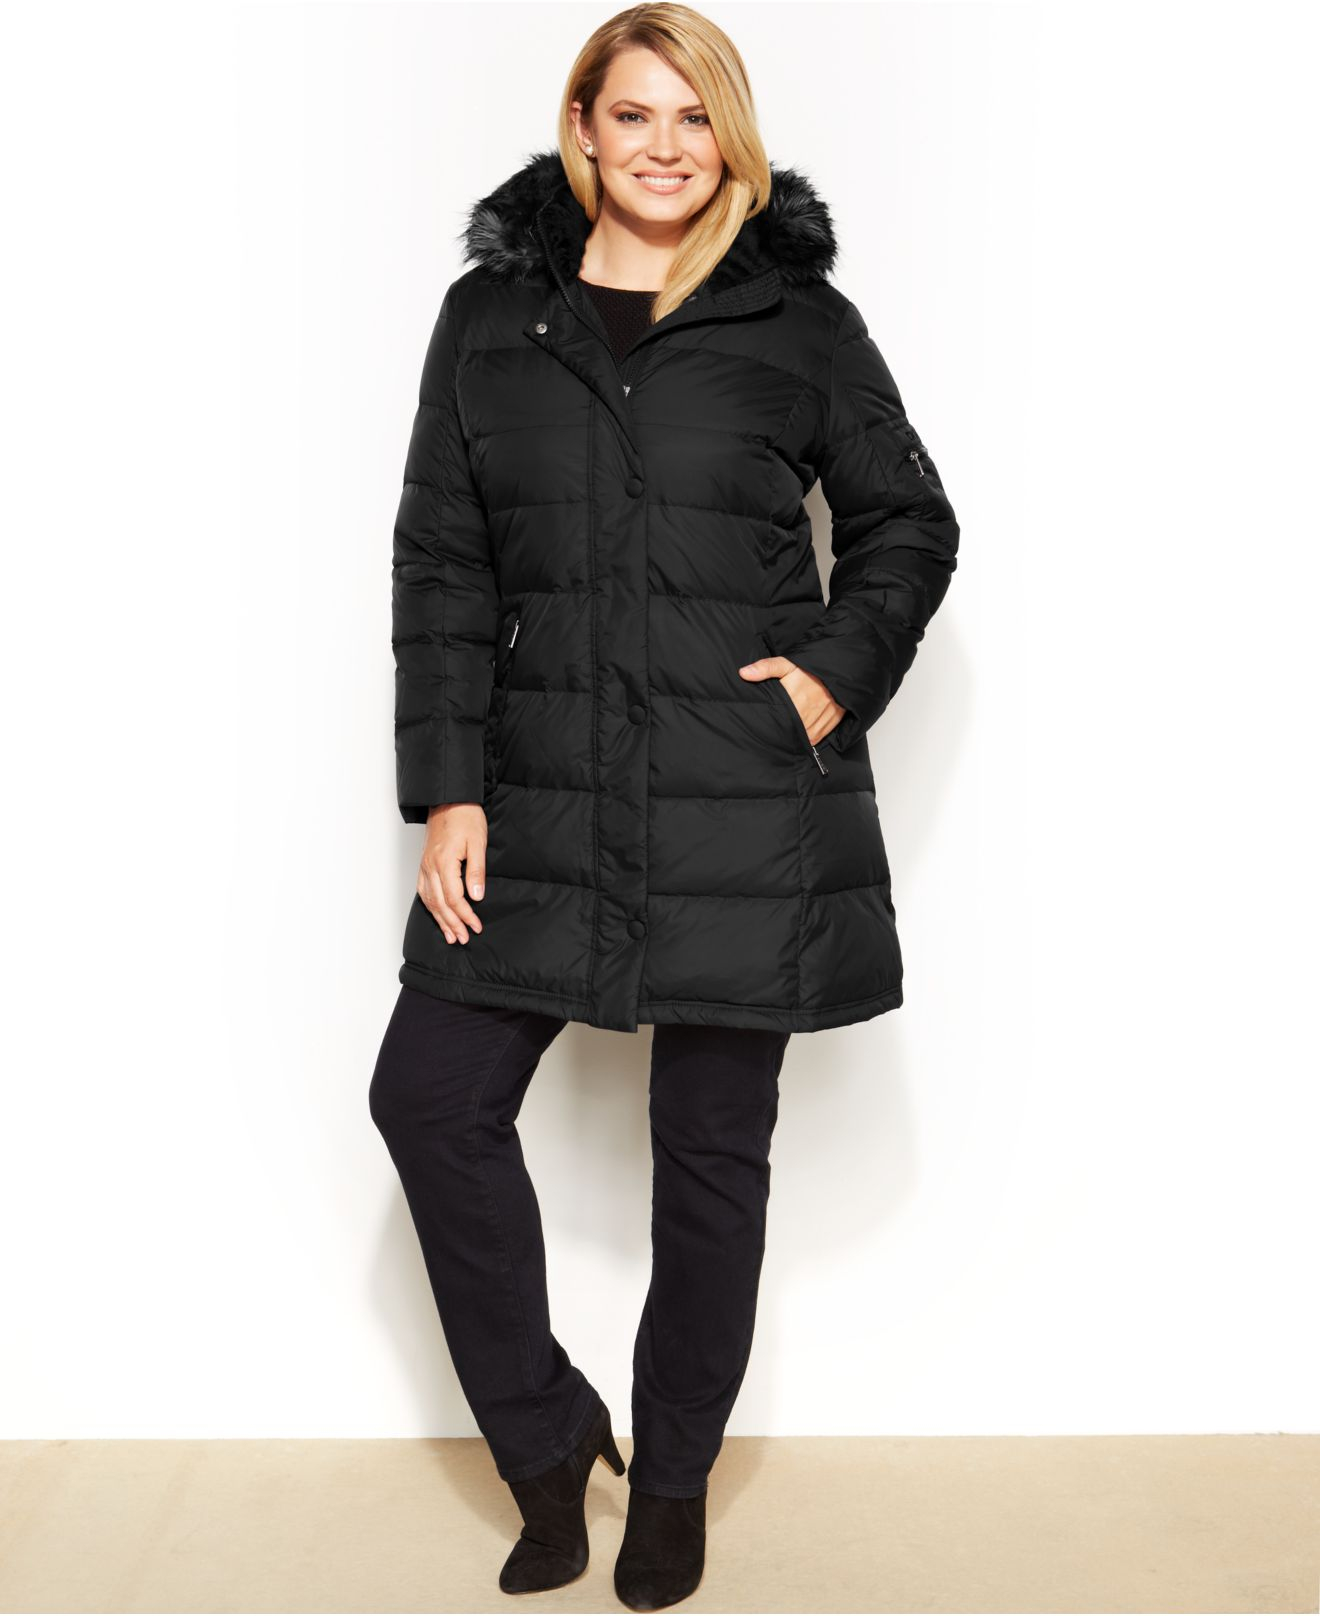 Dkny Plus Size Faux-Fur-Trim Hooded Down Puffer Coat in Black | Lyst